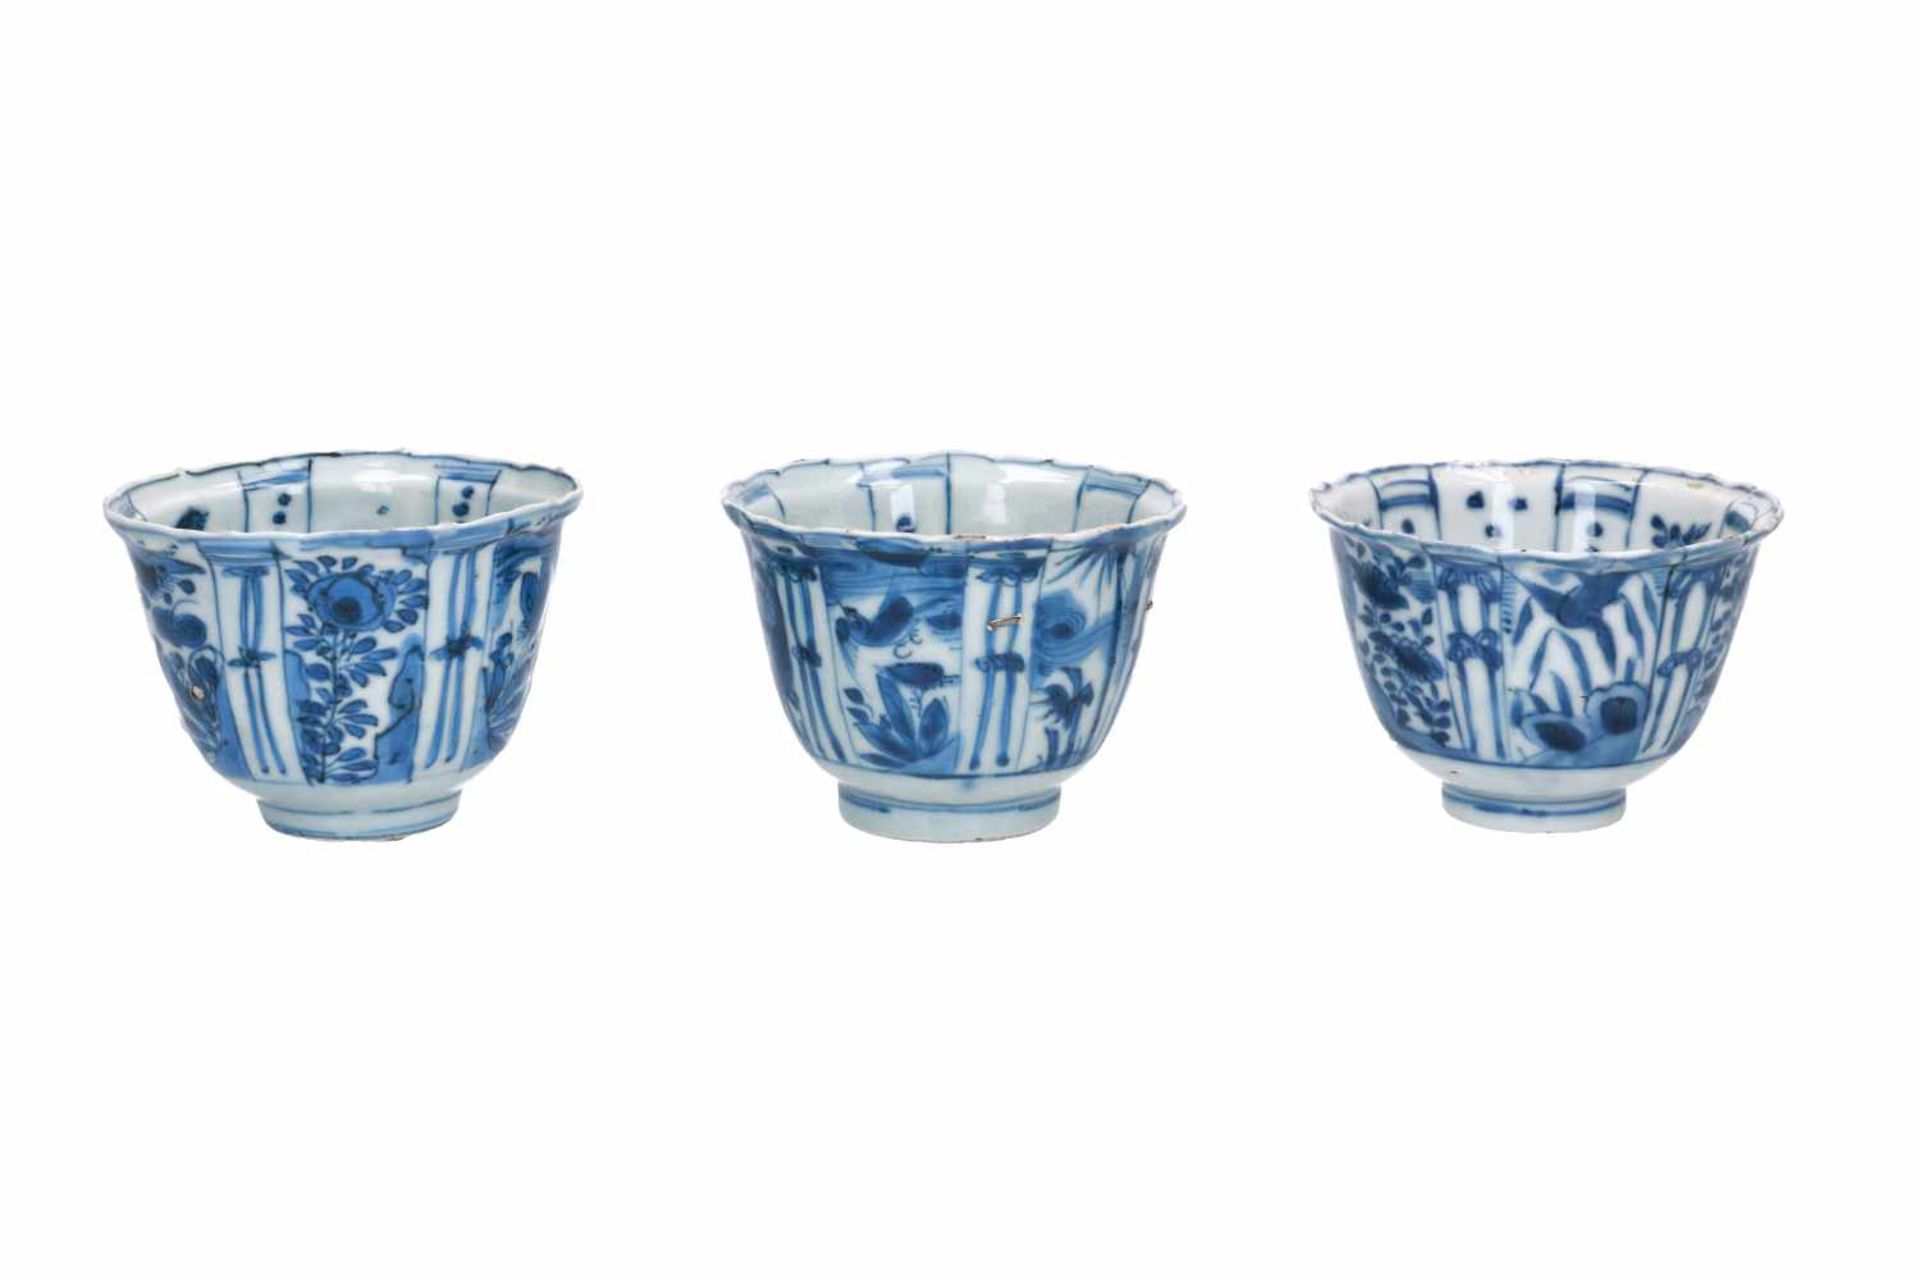 A lot of three blue and white porcelain bowls, decorated with flowers, birds and butterflies. - Bild 4 aus 4